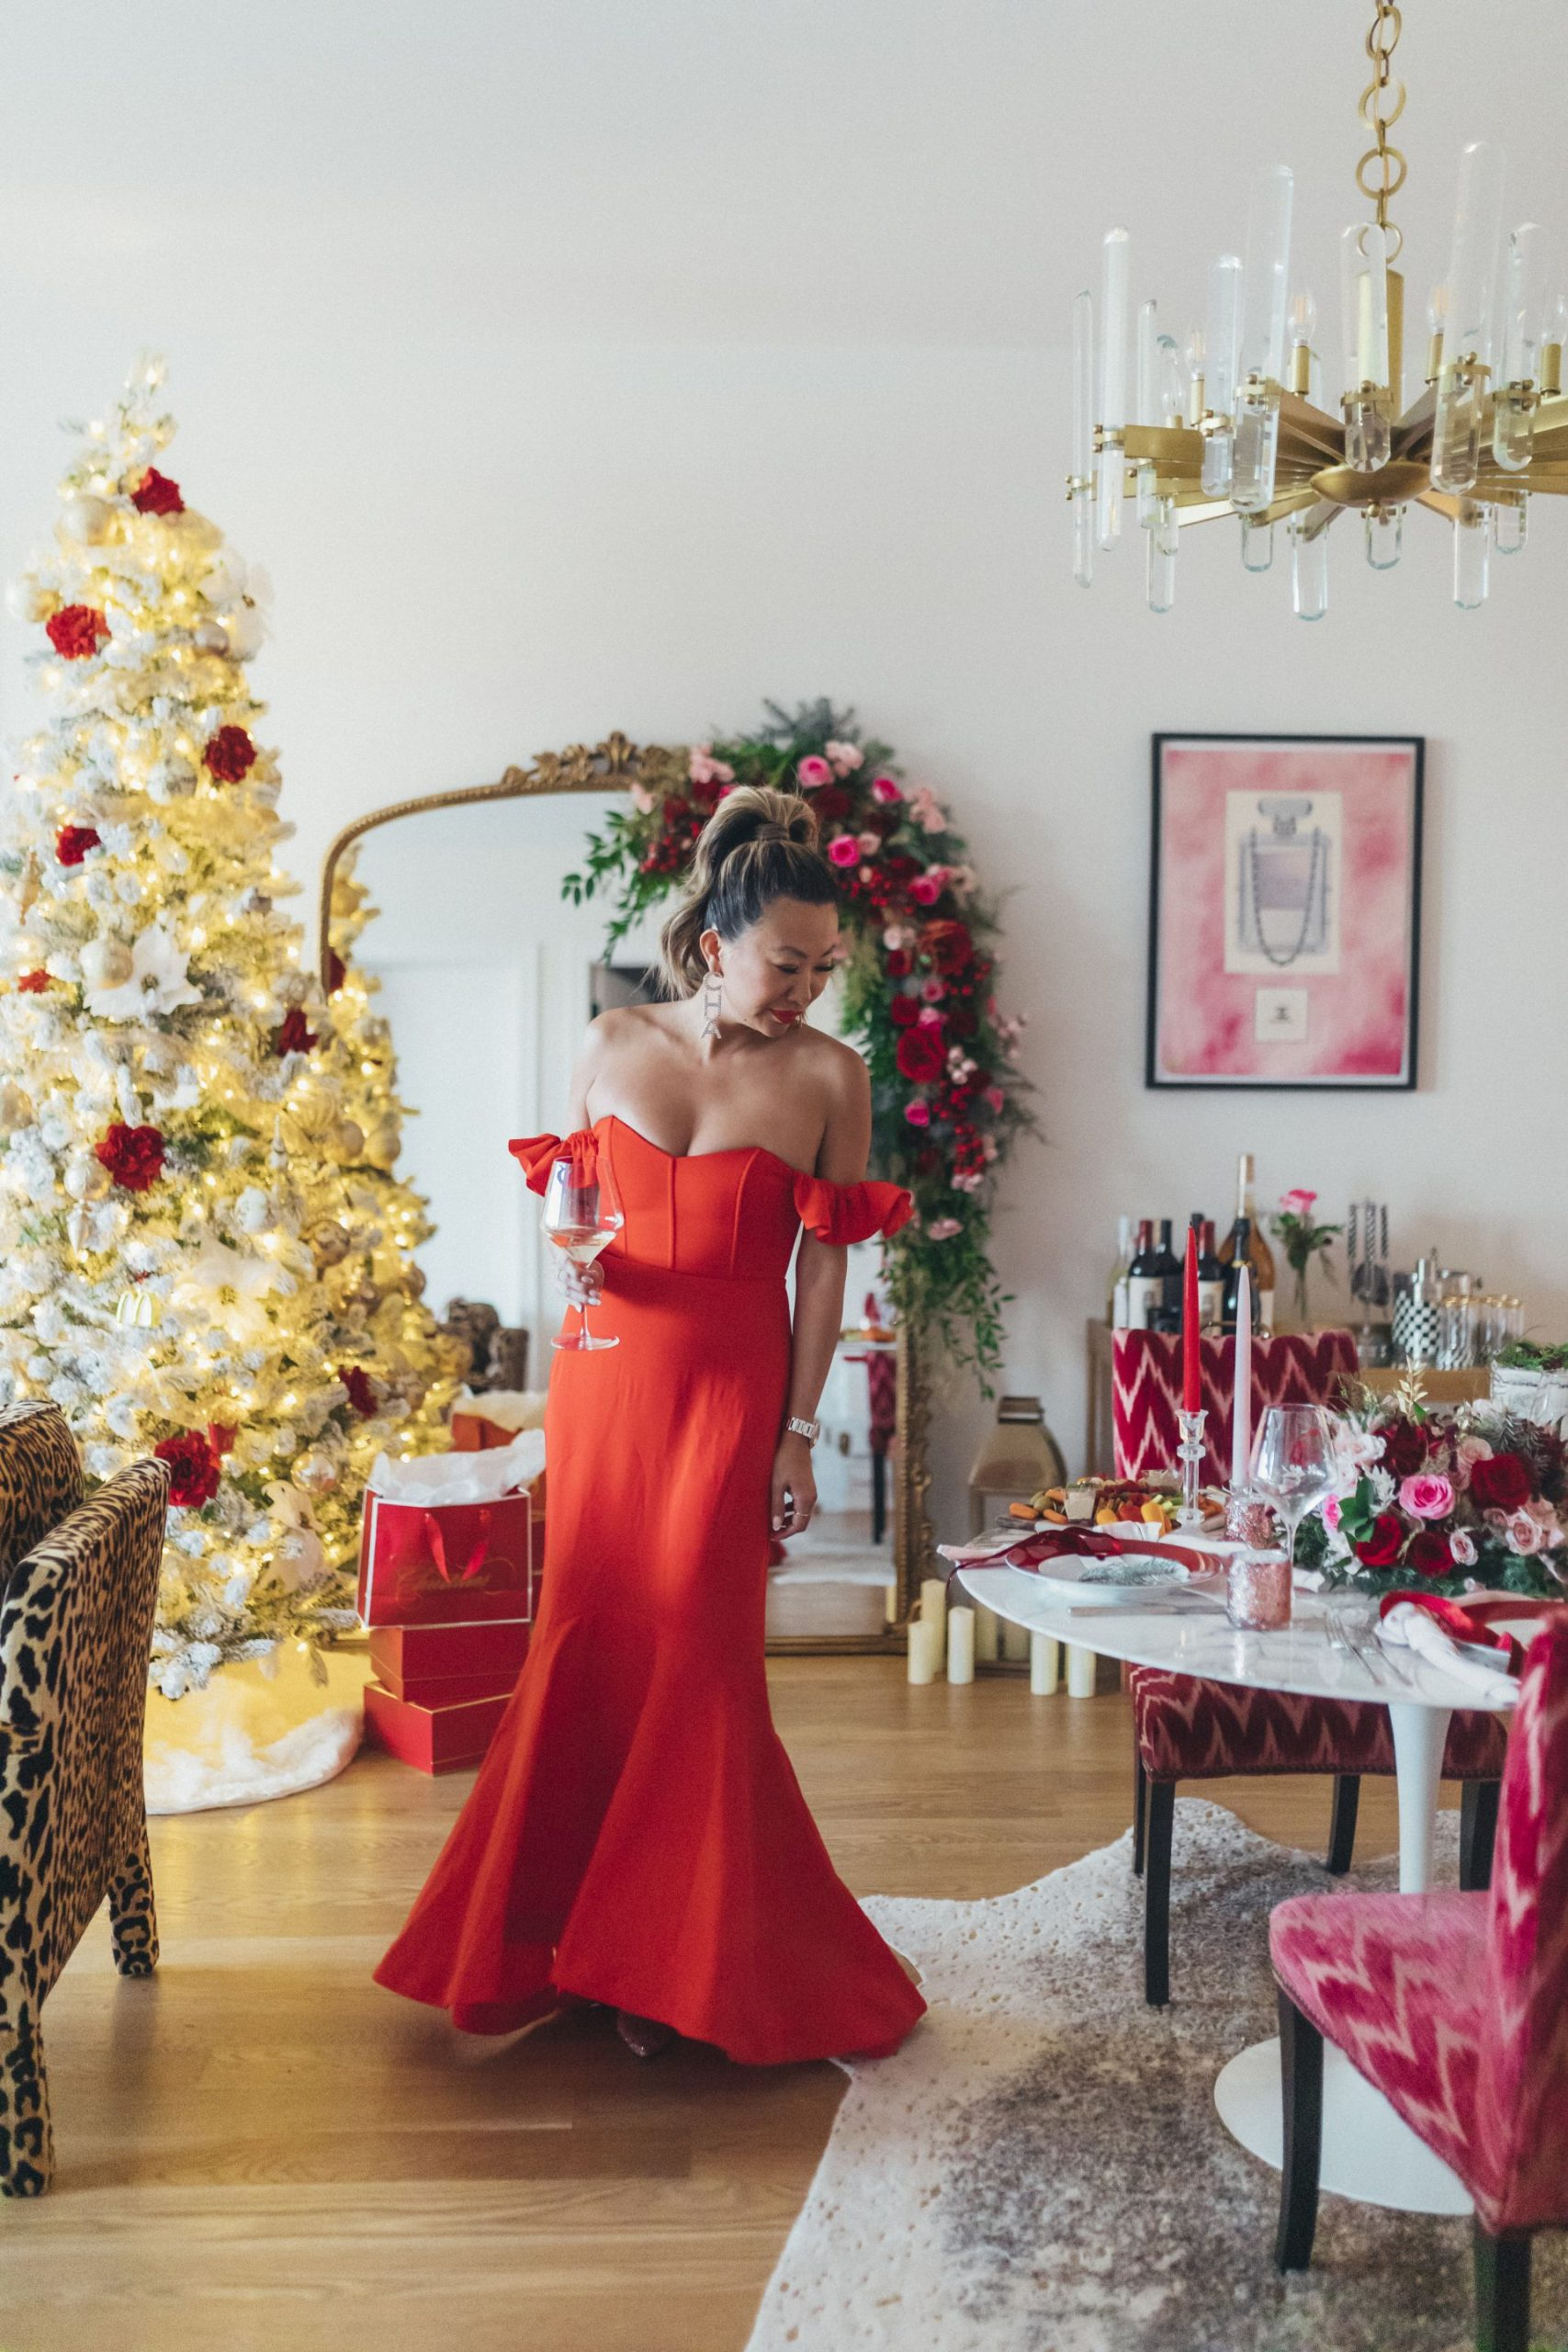 chicago event planner, chicago home, anthropologie primrose mirror, revolve red dress, king of christmas flocked tree, floral garland on mirror, chicago florist, best chicago glam birthday